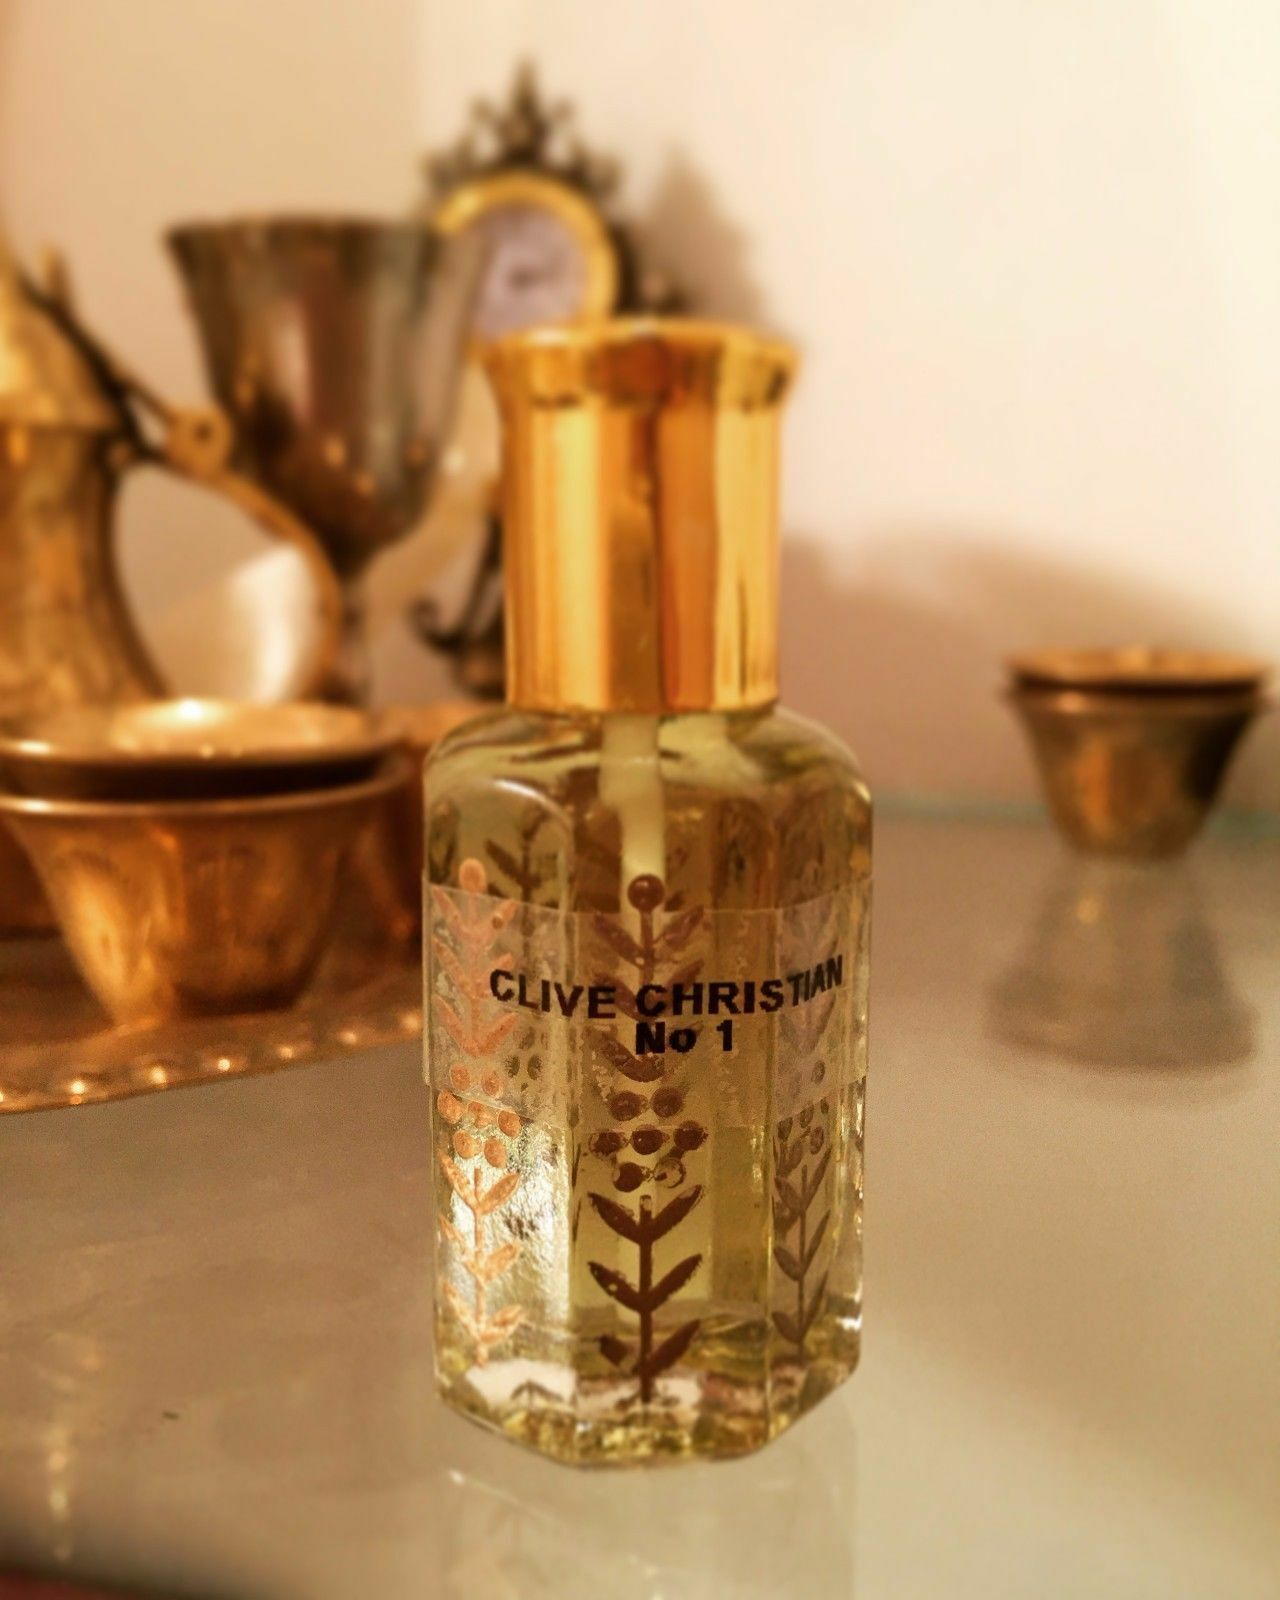 Clive Christian No1 for men - Pure Perfume Oil!!!